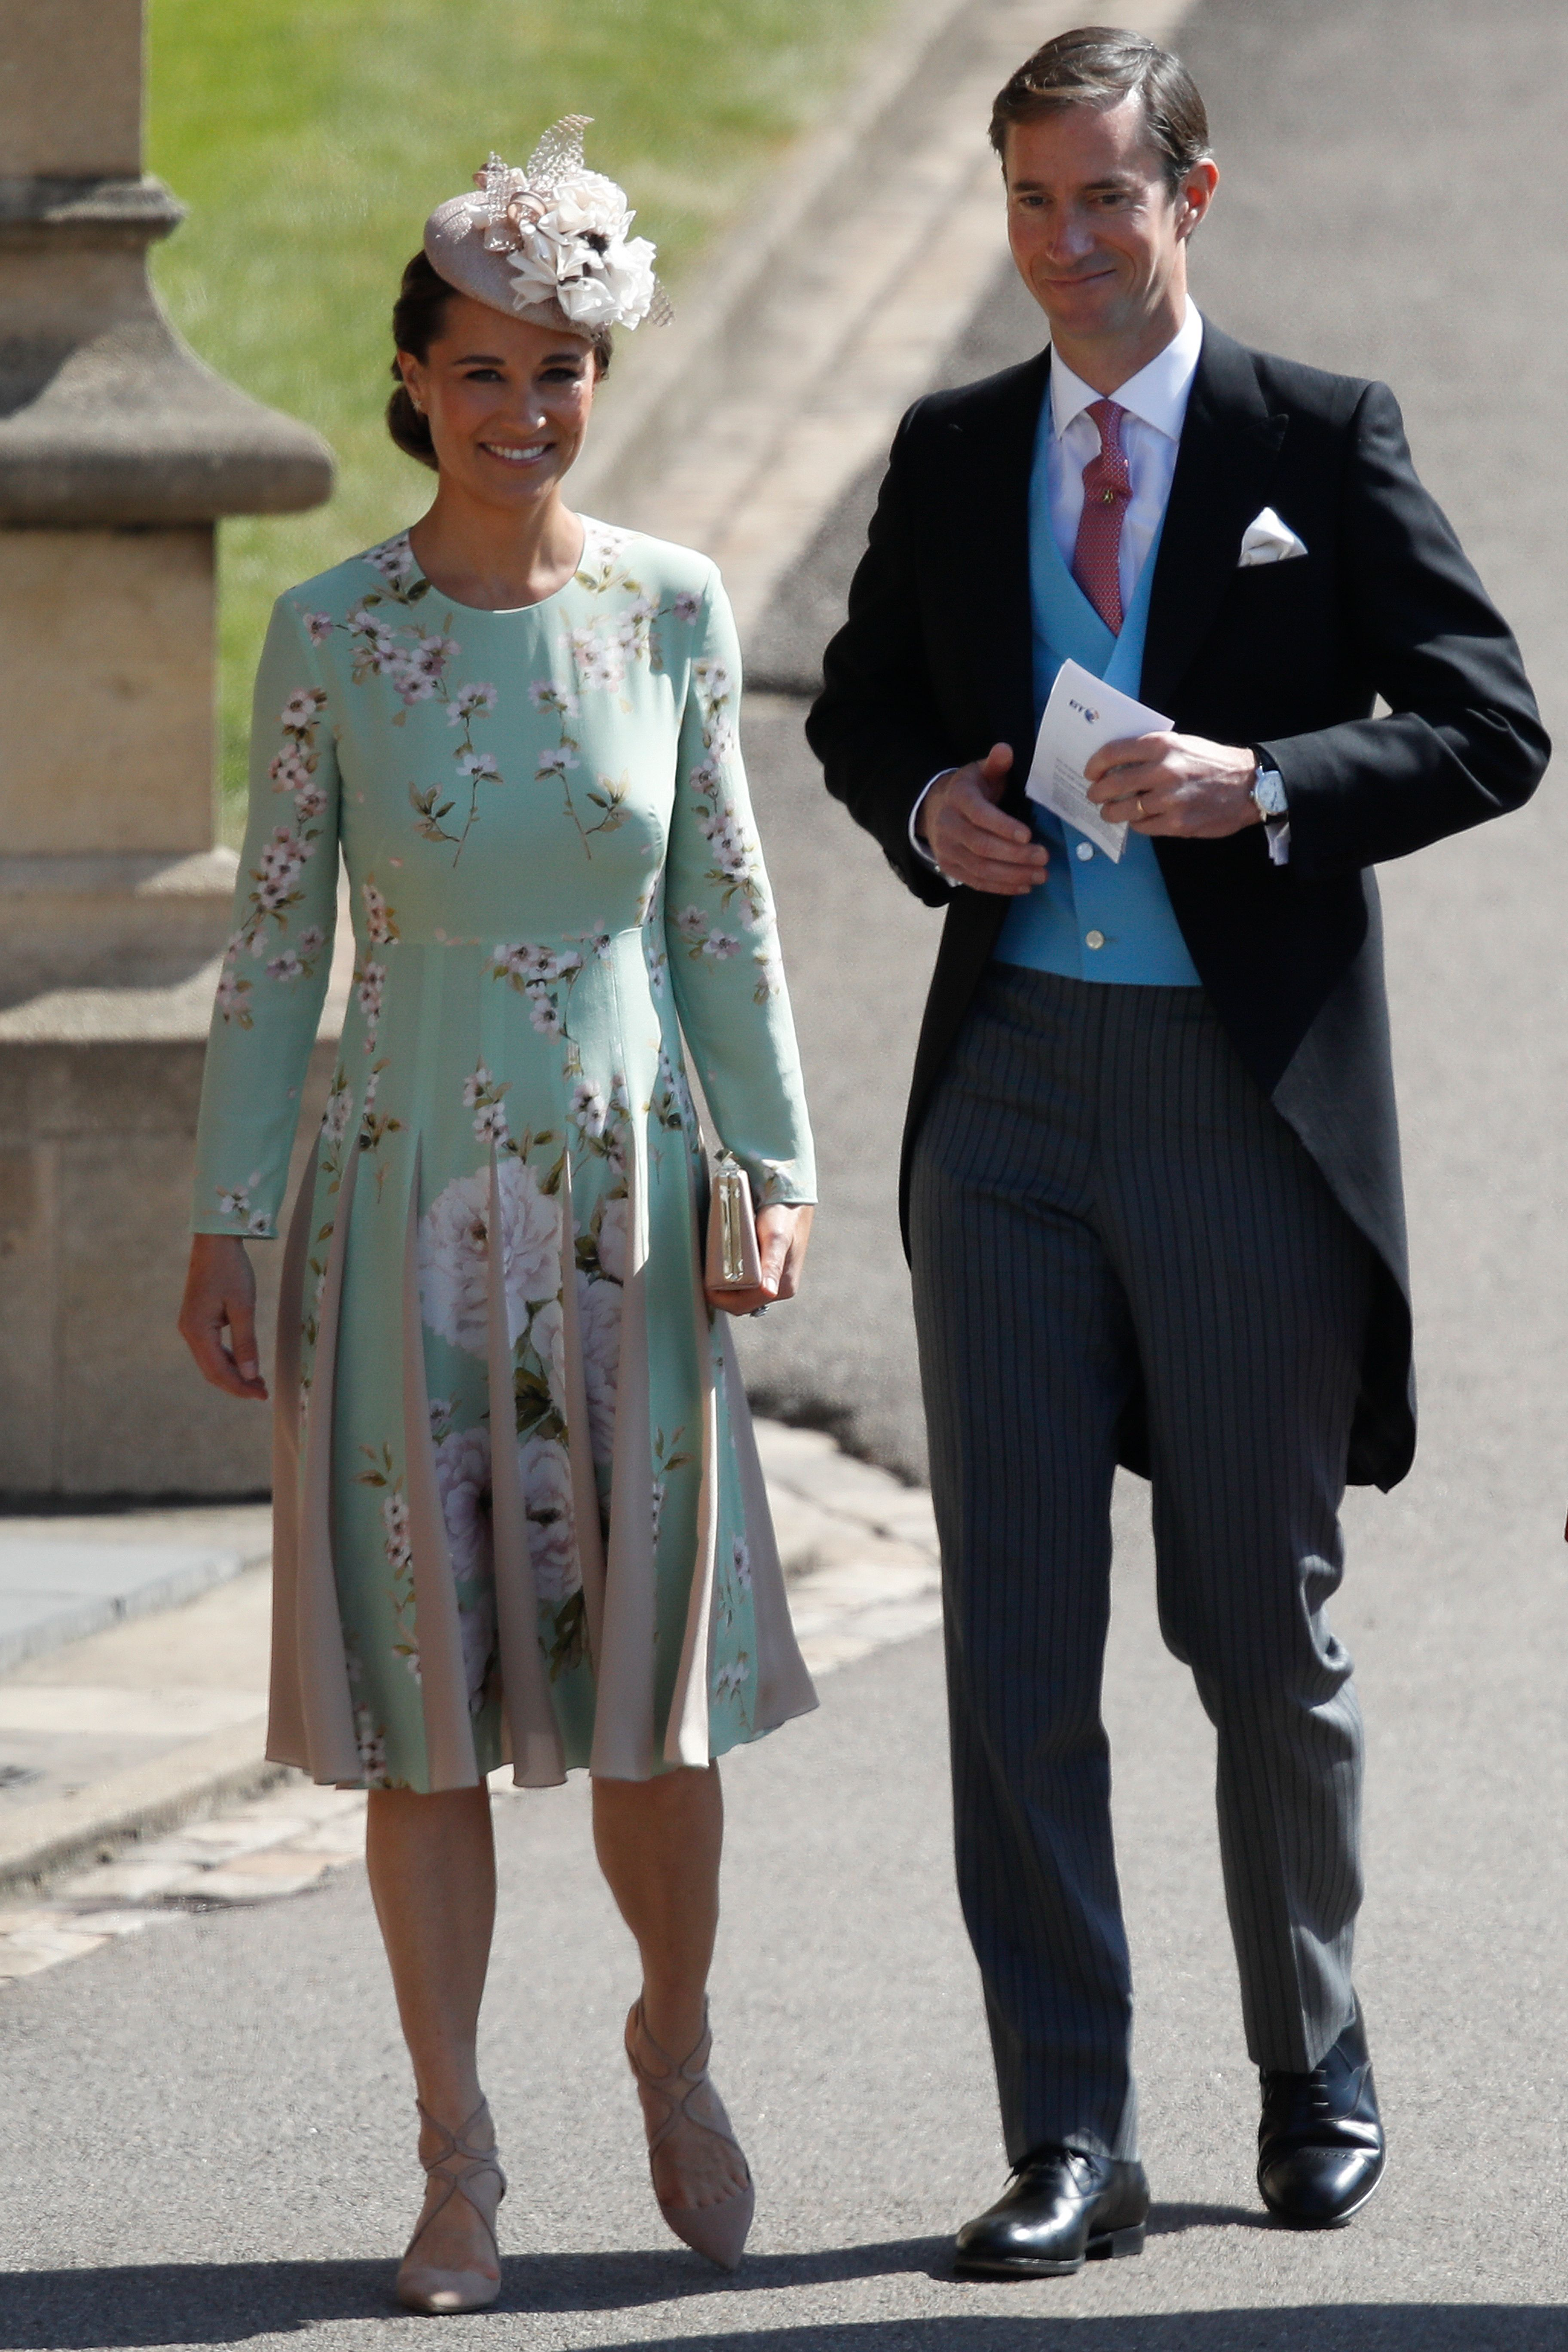 The five best dressed royal wedding guests - and how to shop their looks The five best dressed royal wedding guests - and how to shop their looks new foto